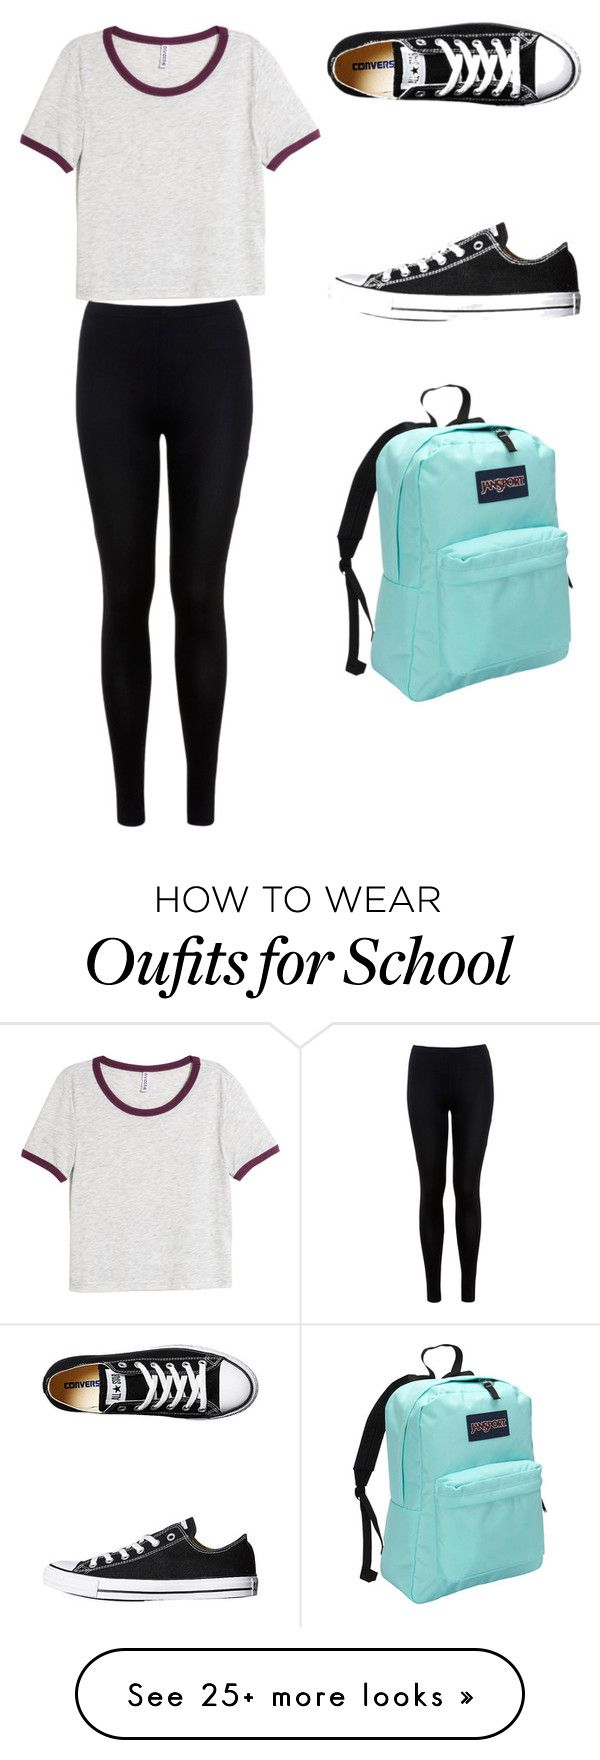 """""""School"""" by nk-4444 on Polyvore featuring H&M, Miss Selfridge, Converse and JanSport"""